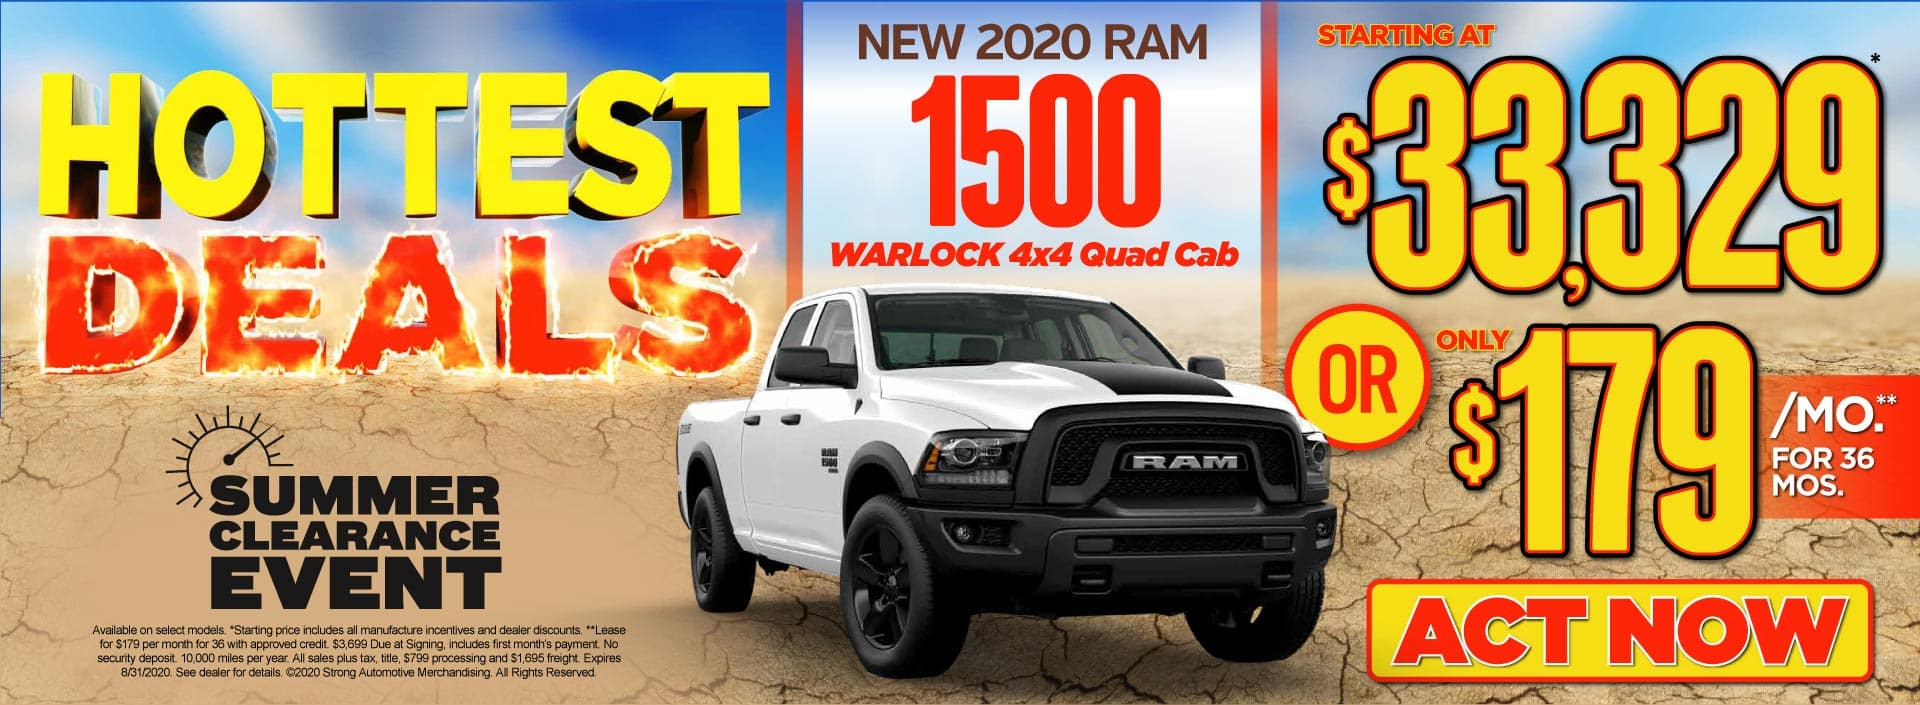 New 2020 Ram 1500 Warlock 4x4 - Starting at $33,329* or $179/mo** - Click to View Inventory